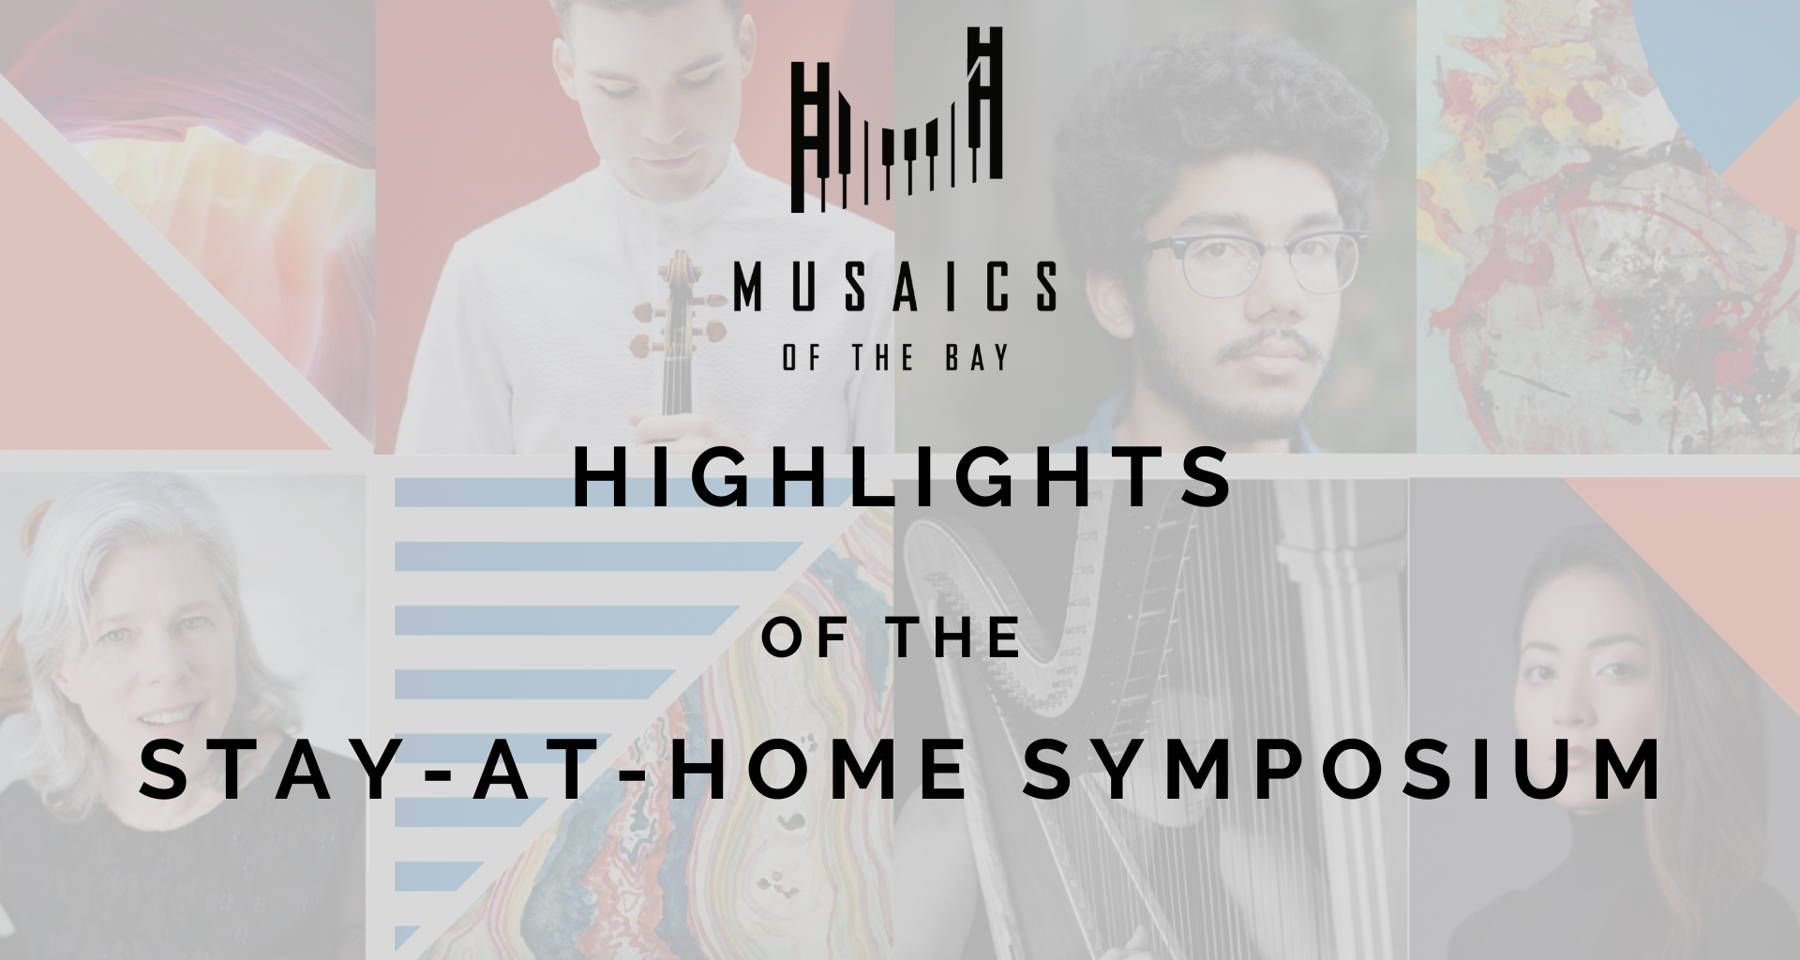 Highlights of the Stay-at-Home Symposium